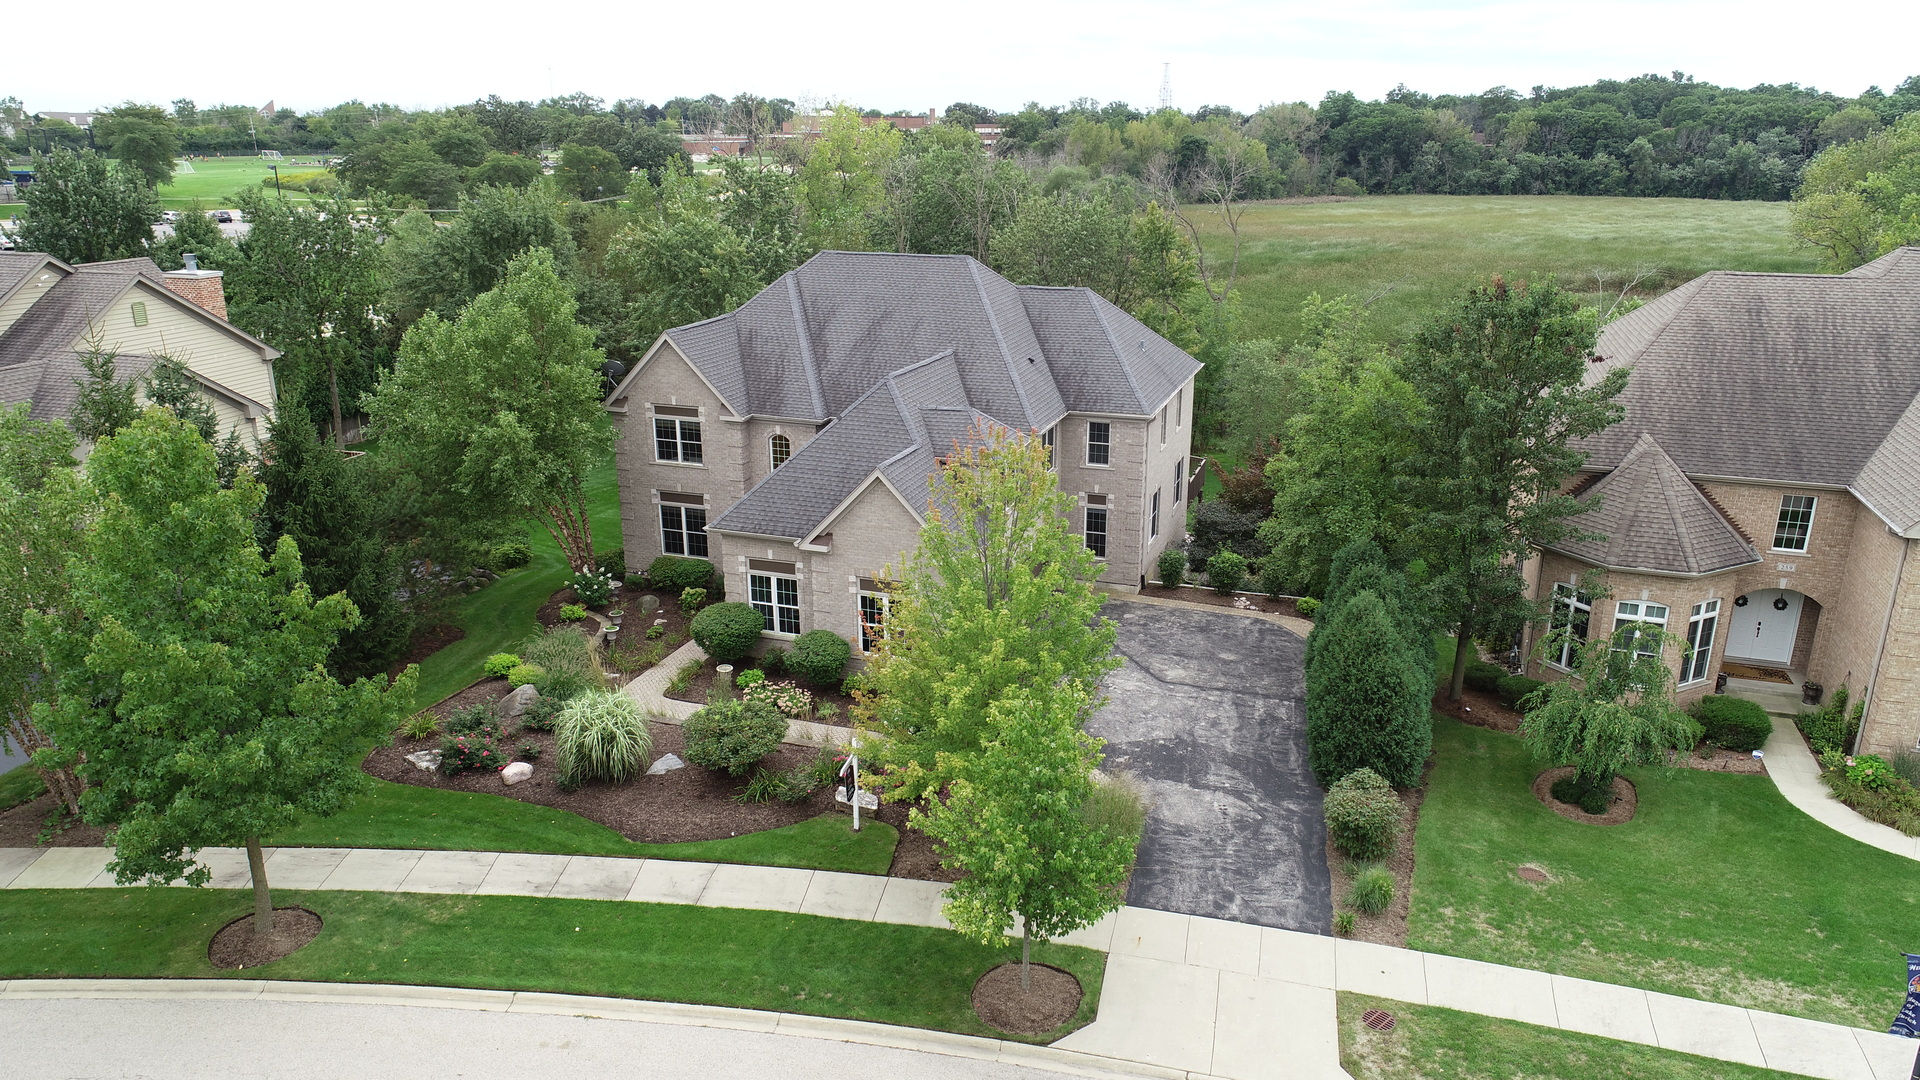 267 Clair View Court, Lake Zurich, Illinois